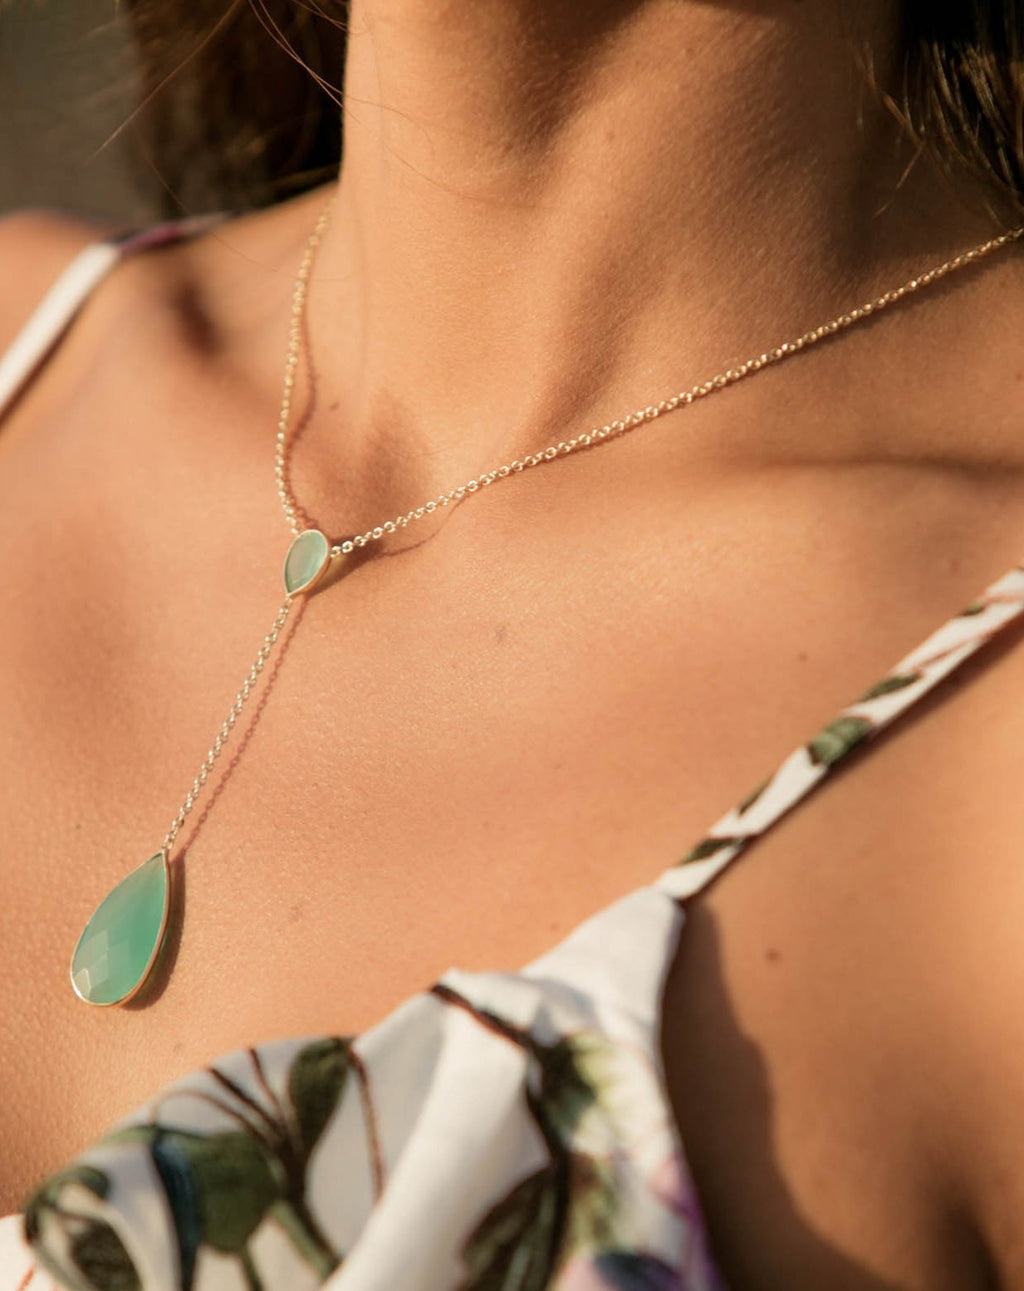 Gabrielle Necklace * Aqua Chalcedony, Labradorite or Moonstone * Gold Plated 18K * BJN042